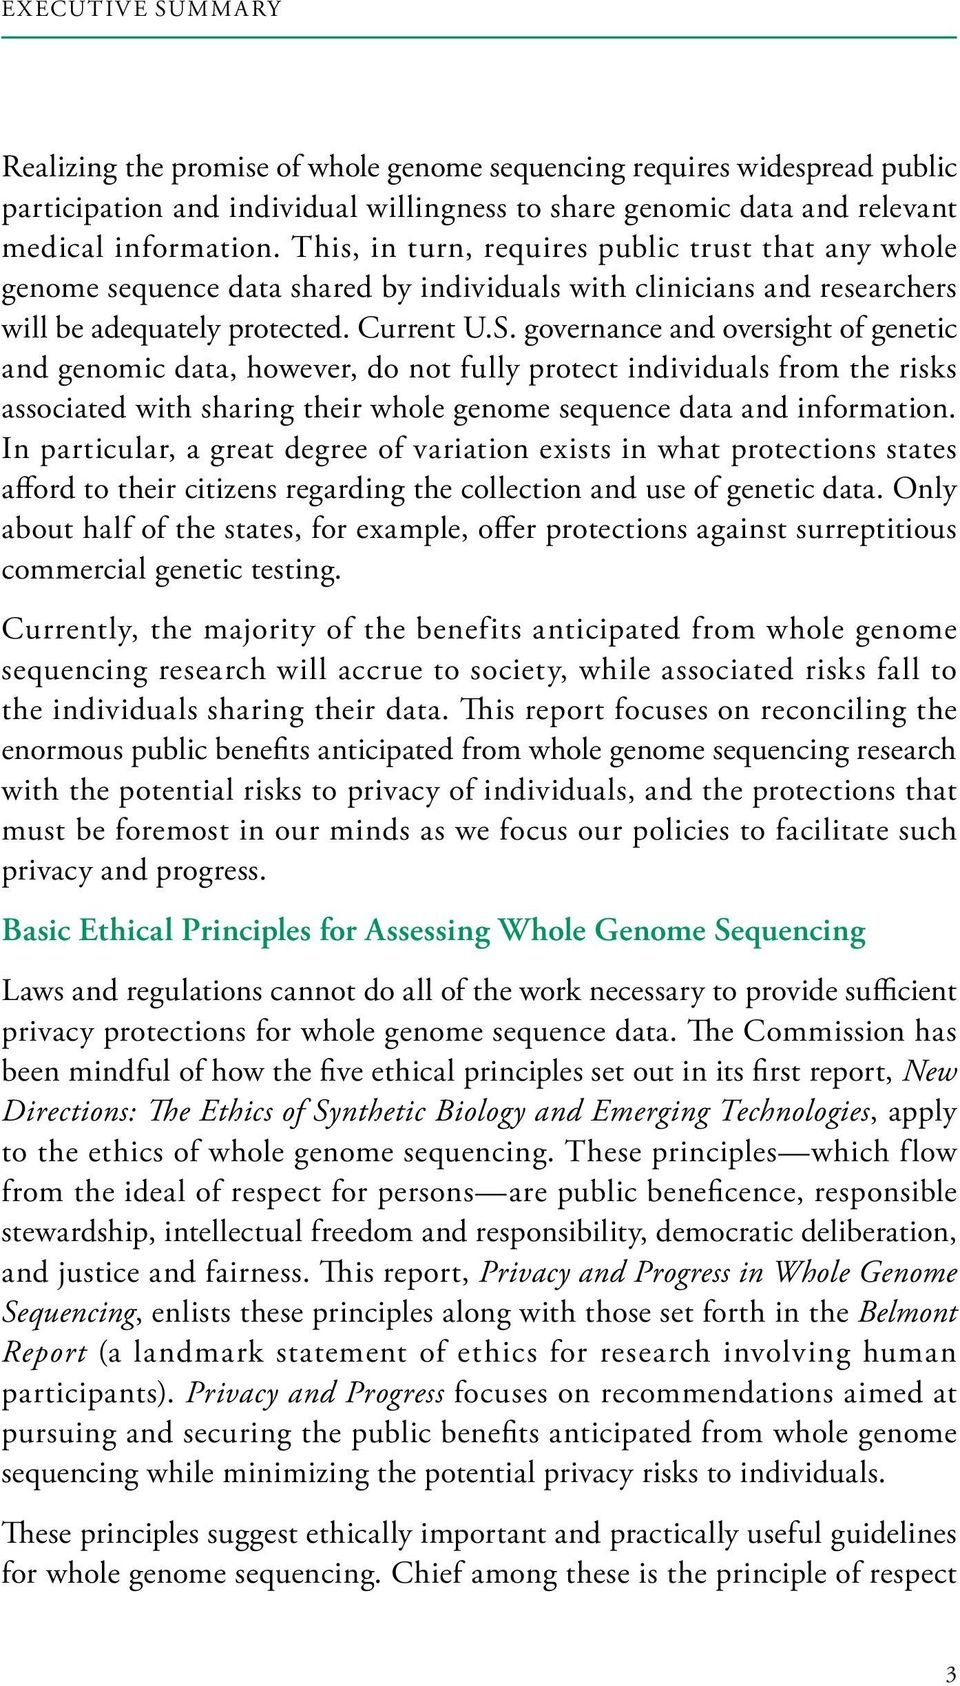 governance and oversight of genetic and genomic data, however, do not fully protect individuals from the risks associated with sharing their whole genome sequence data and information.